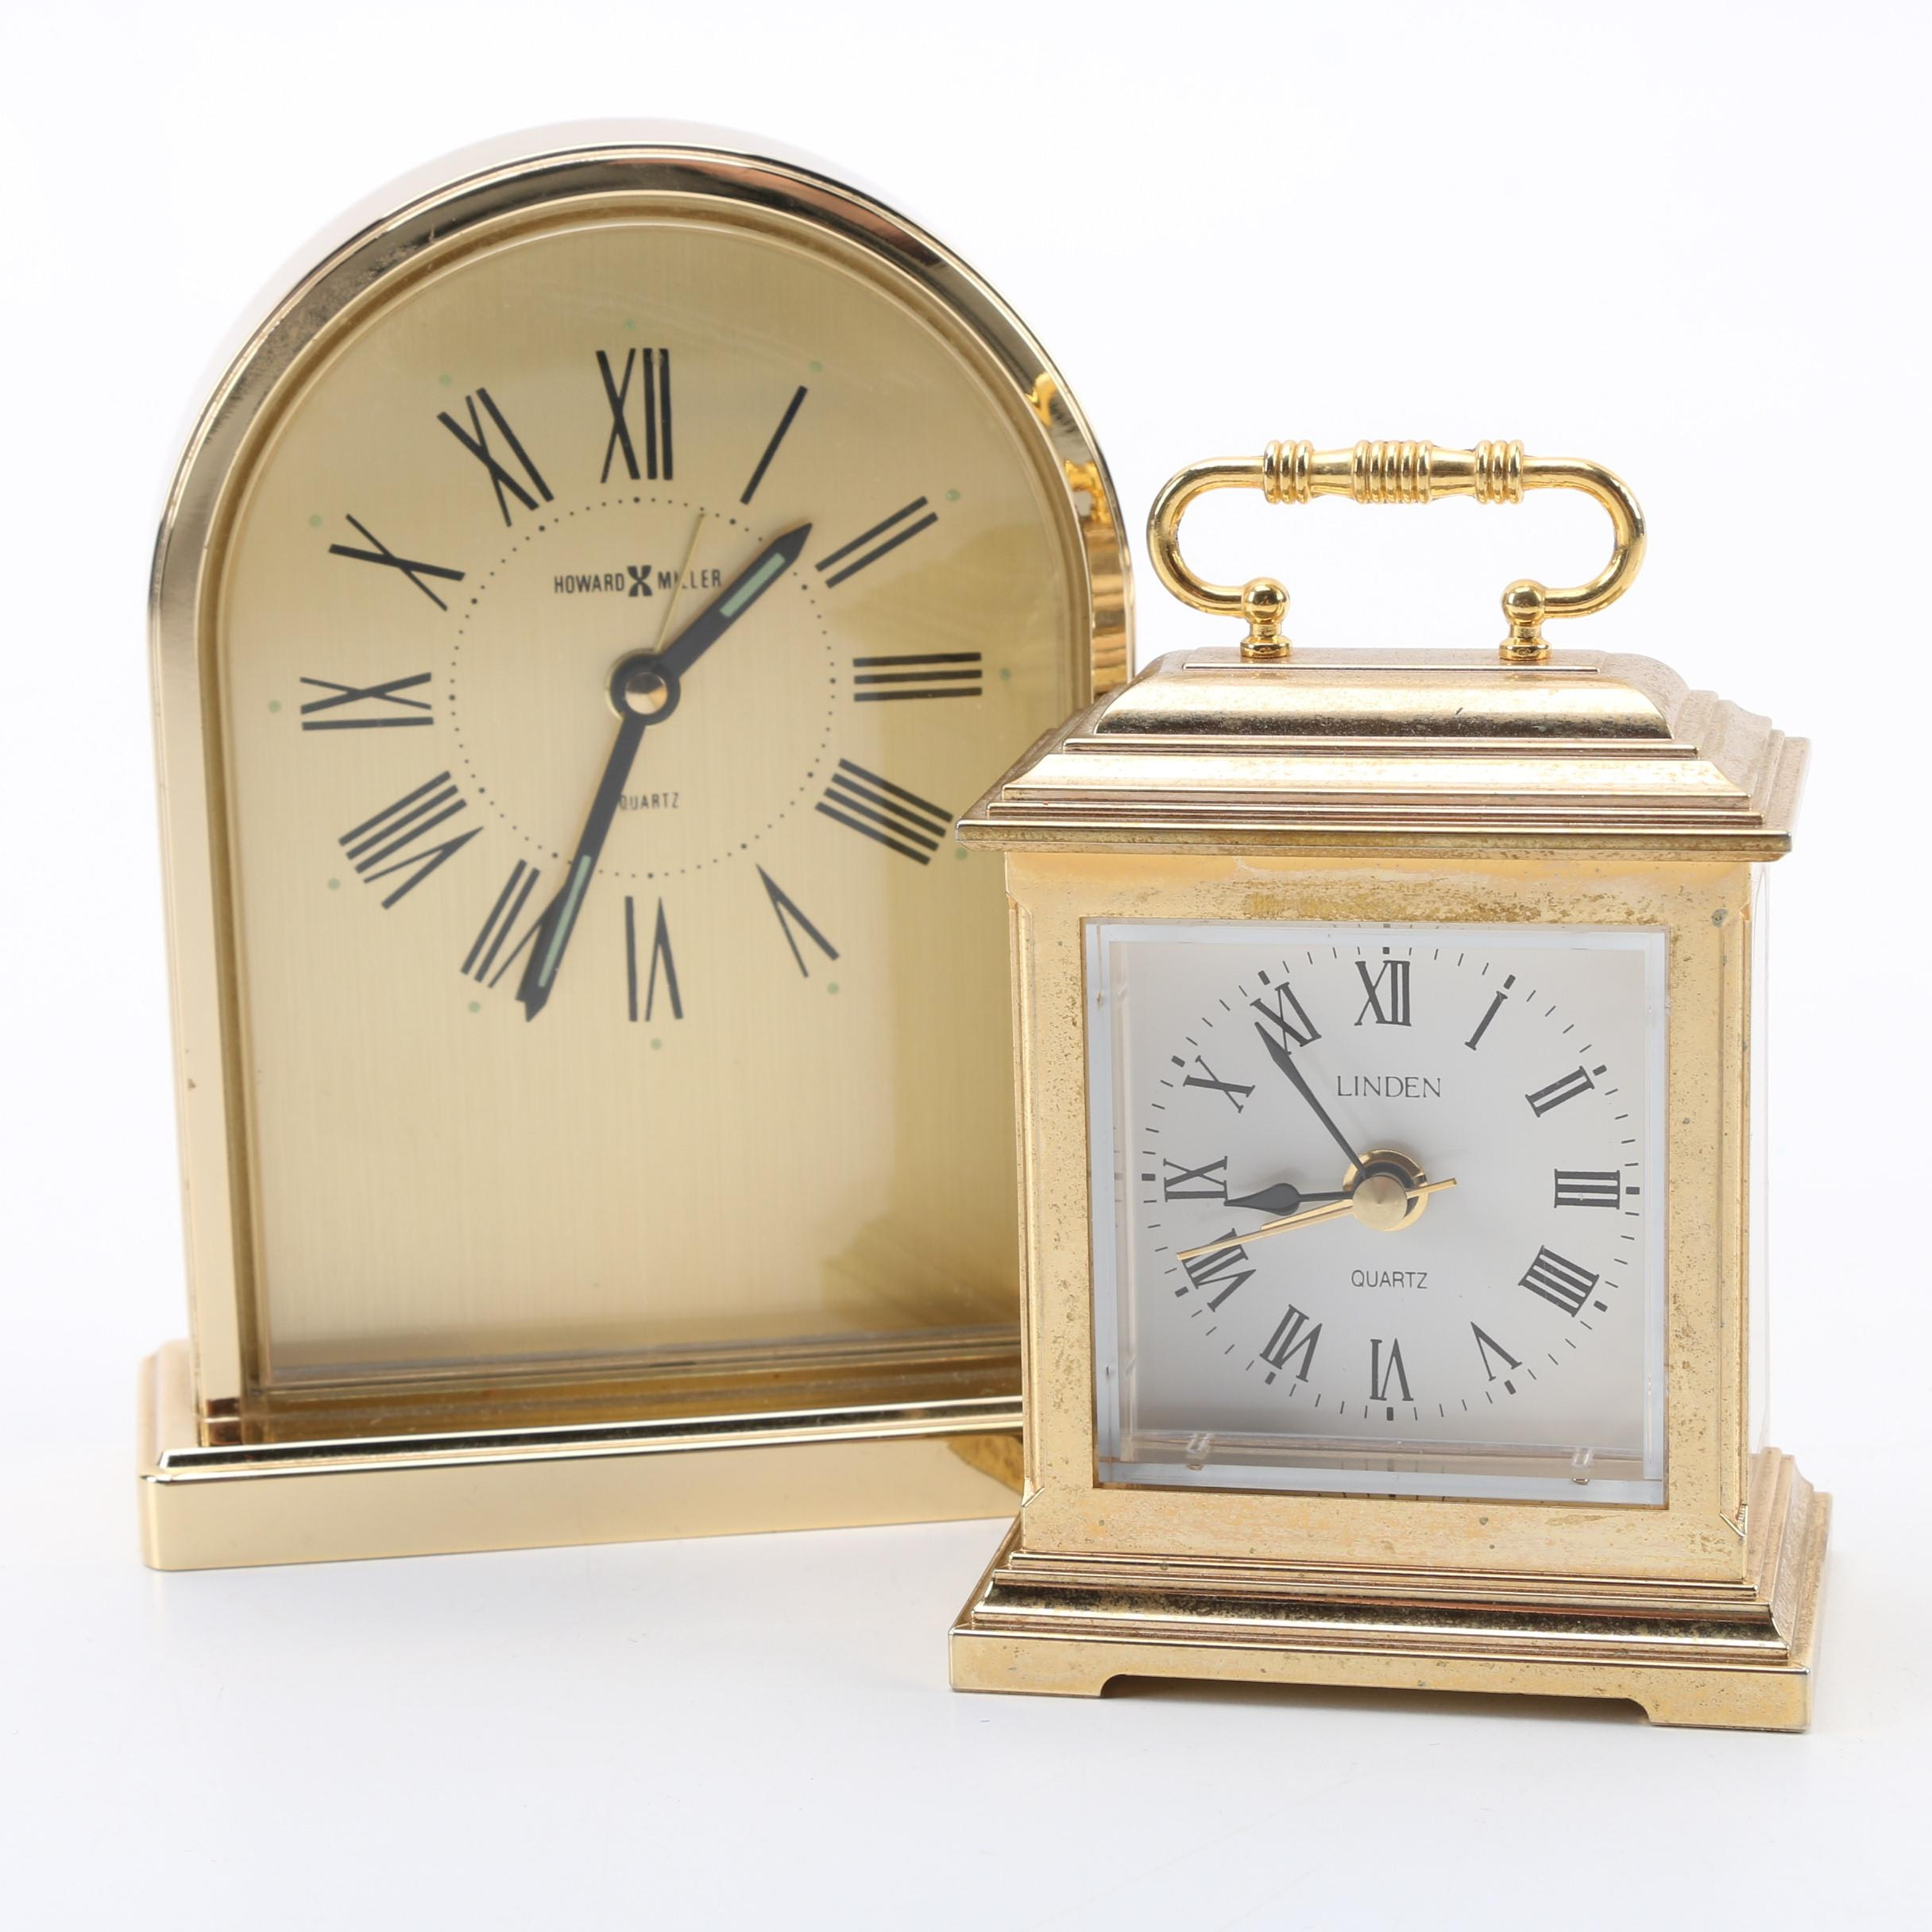 Linden and Howard Miller Brass Alarm Clocks